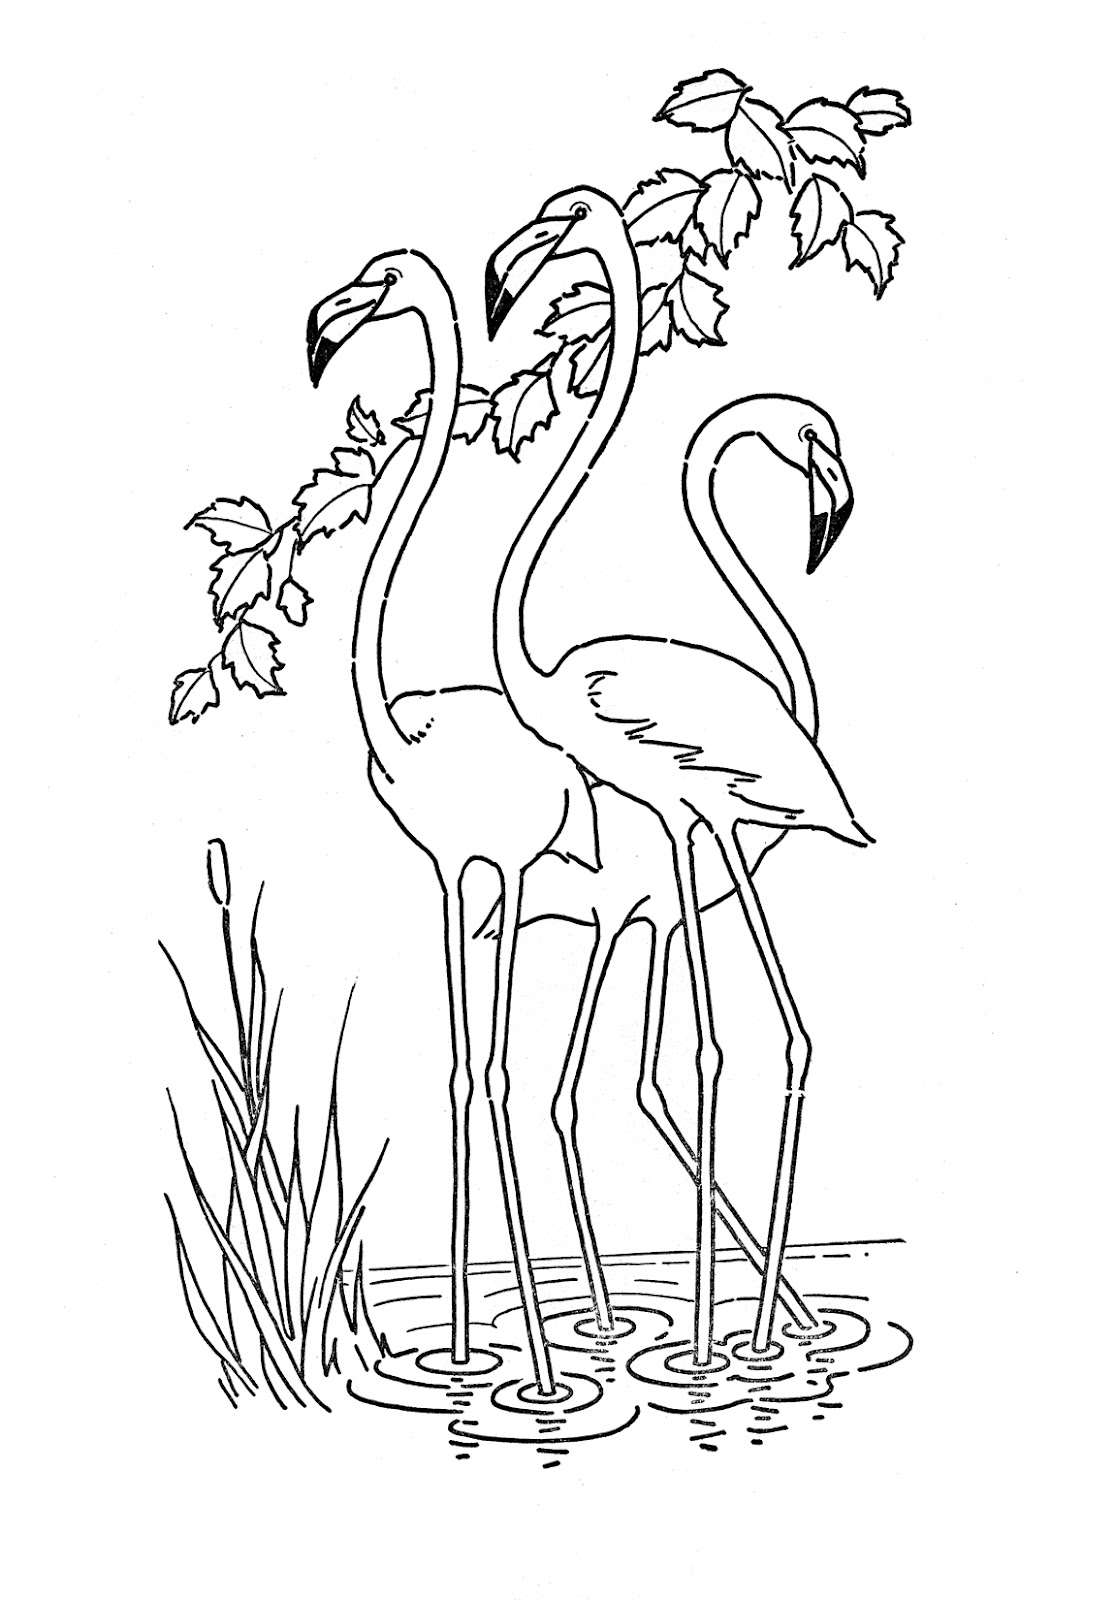 kids art coloring pages coloring pages printable doodles kids coloring home coloring pages art kids